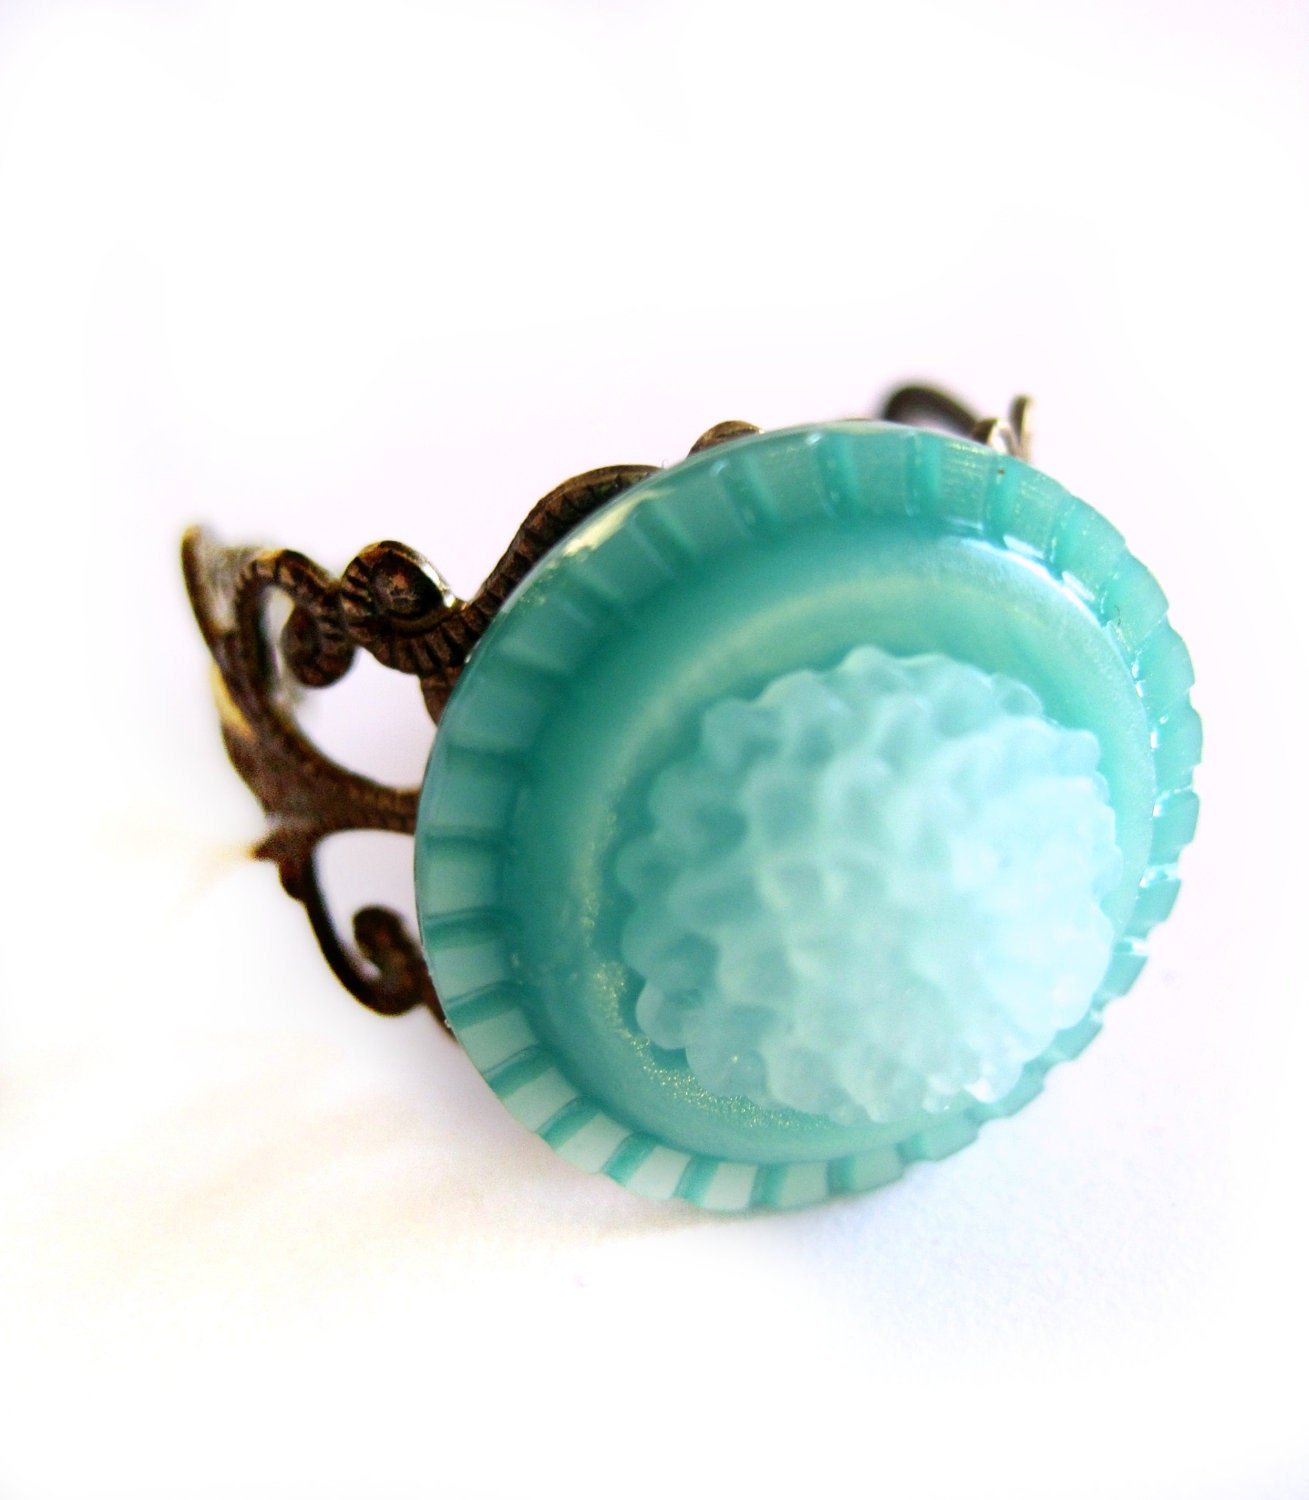 Turquoise ring - Aqua, blue, green - Vintage button ring, button jewelry, Flower ring, chrysanthemum cabochon - filigree, brass band